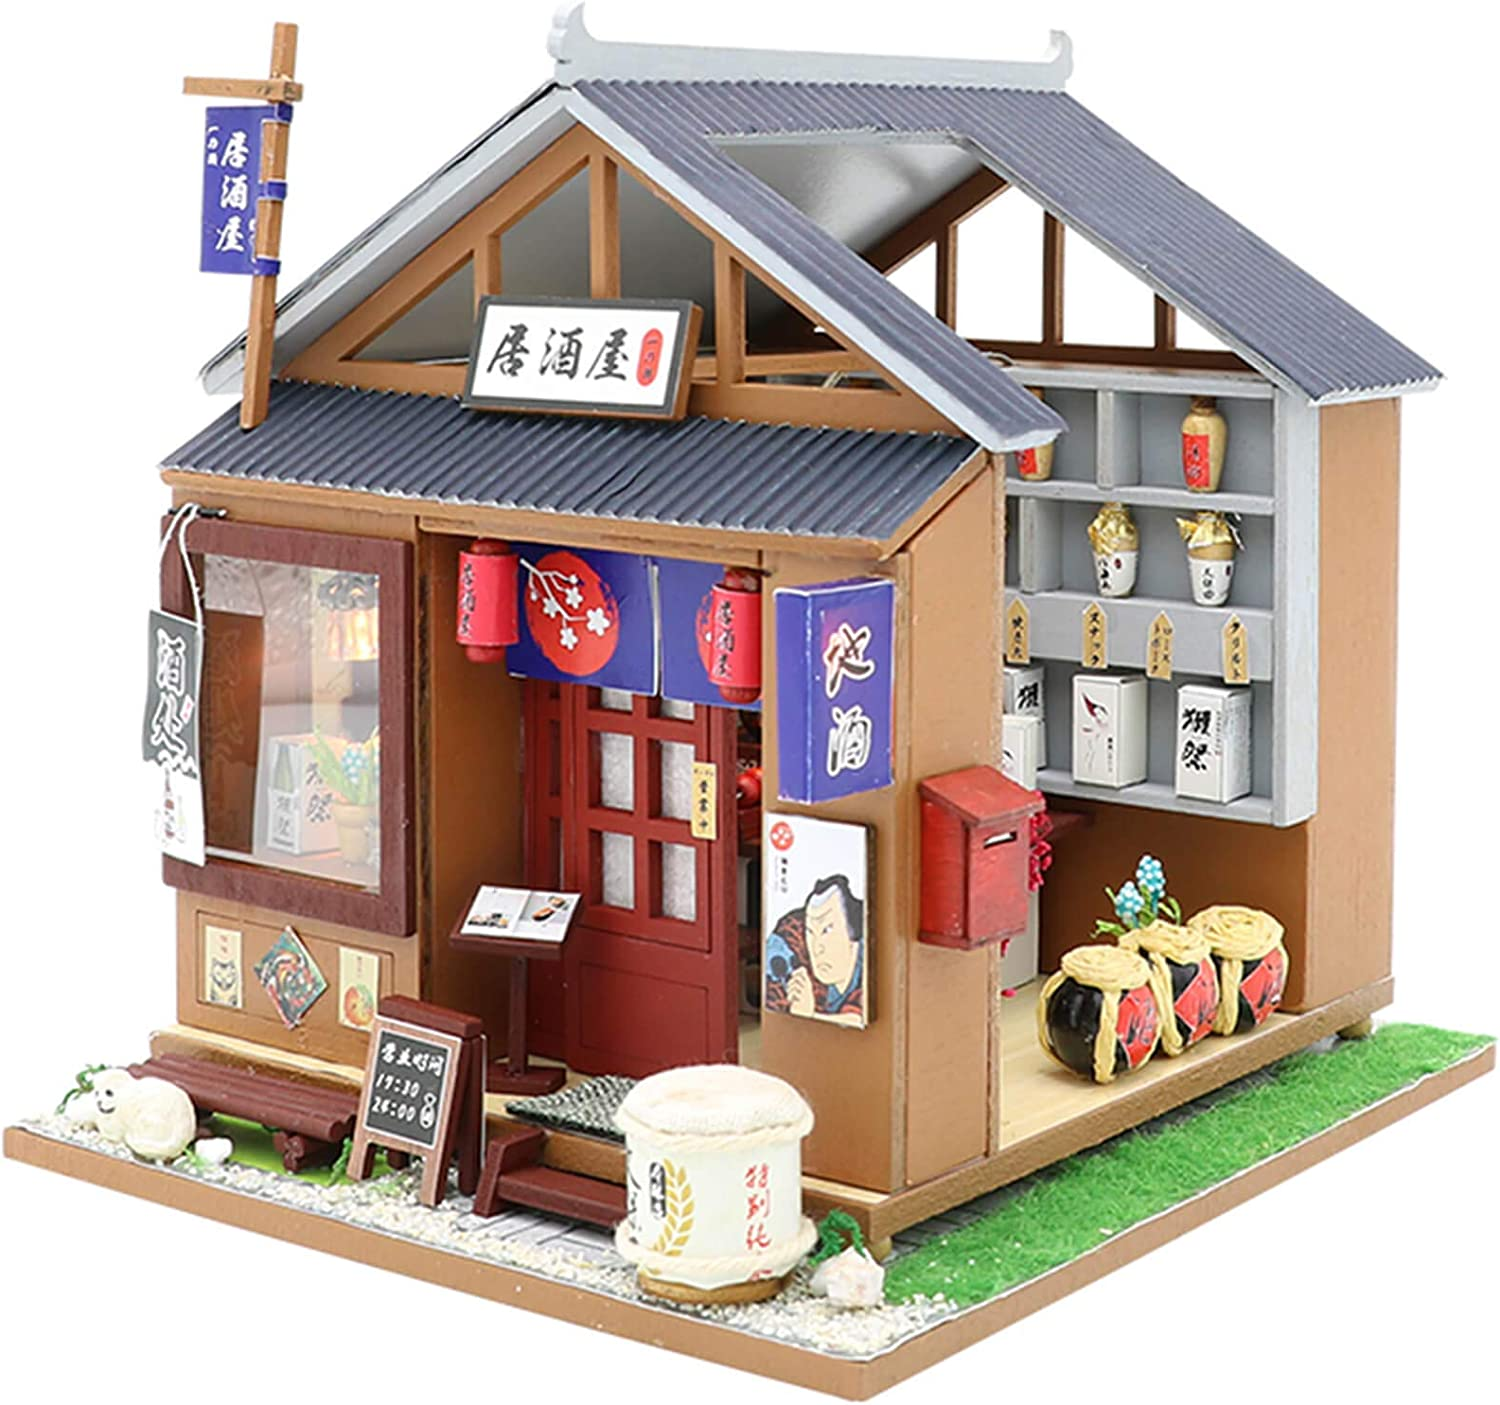 WADILE Dollhouses Wooden DIY Toys Kits Model Handmade Creative Gift Furniture Realistic and Suitable for Children Over 14 Years Old Or with The Help of Adults (7.87in6.3in6.3in, M037)